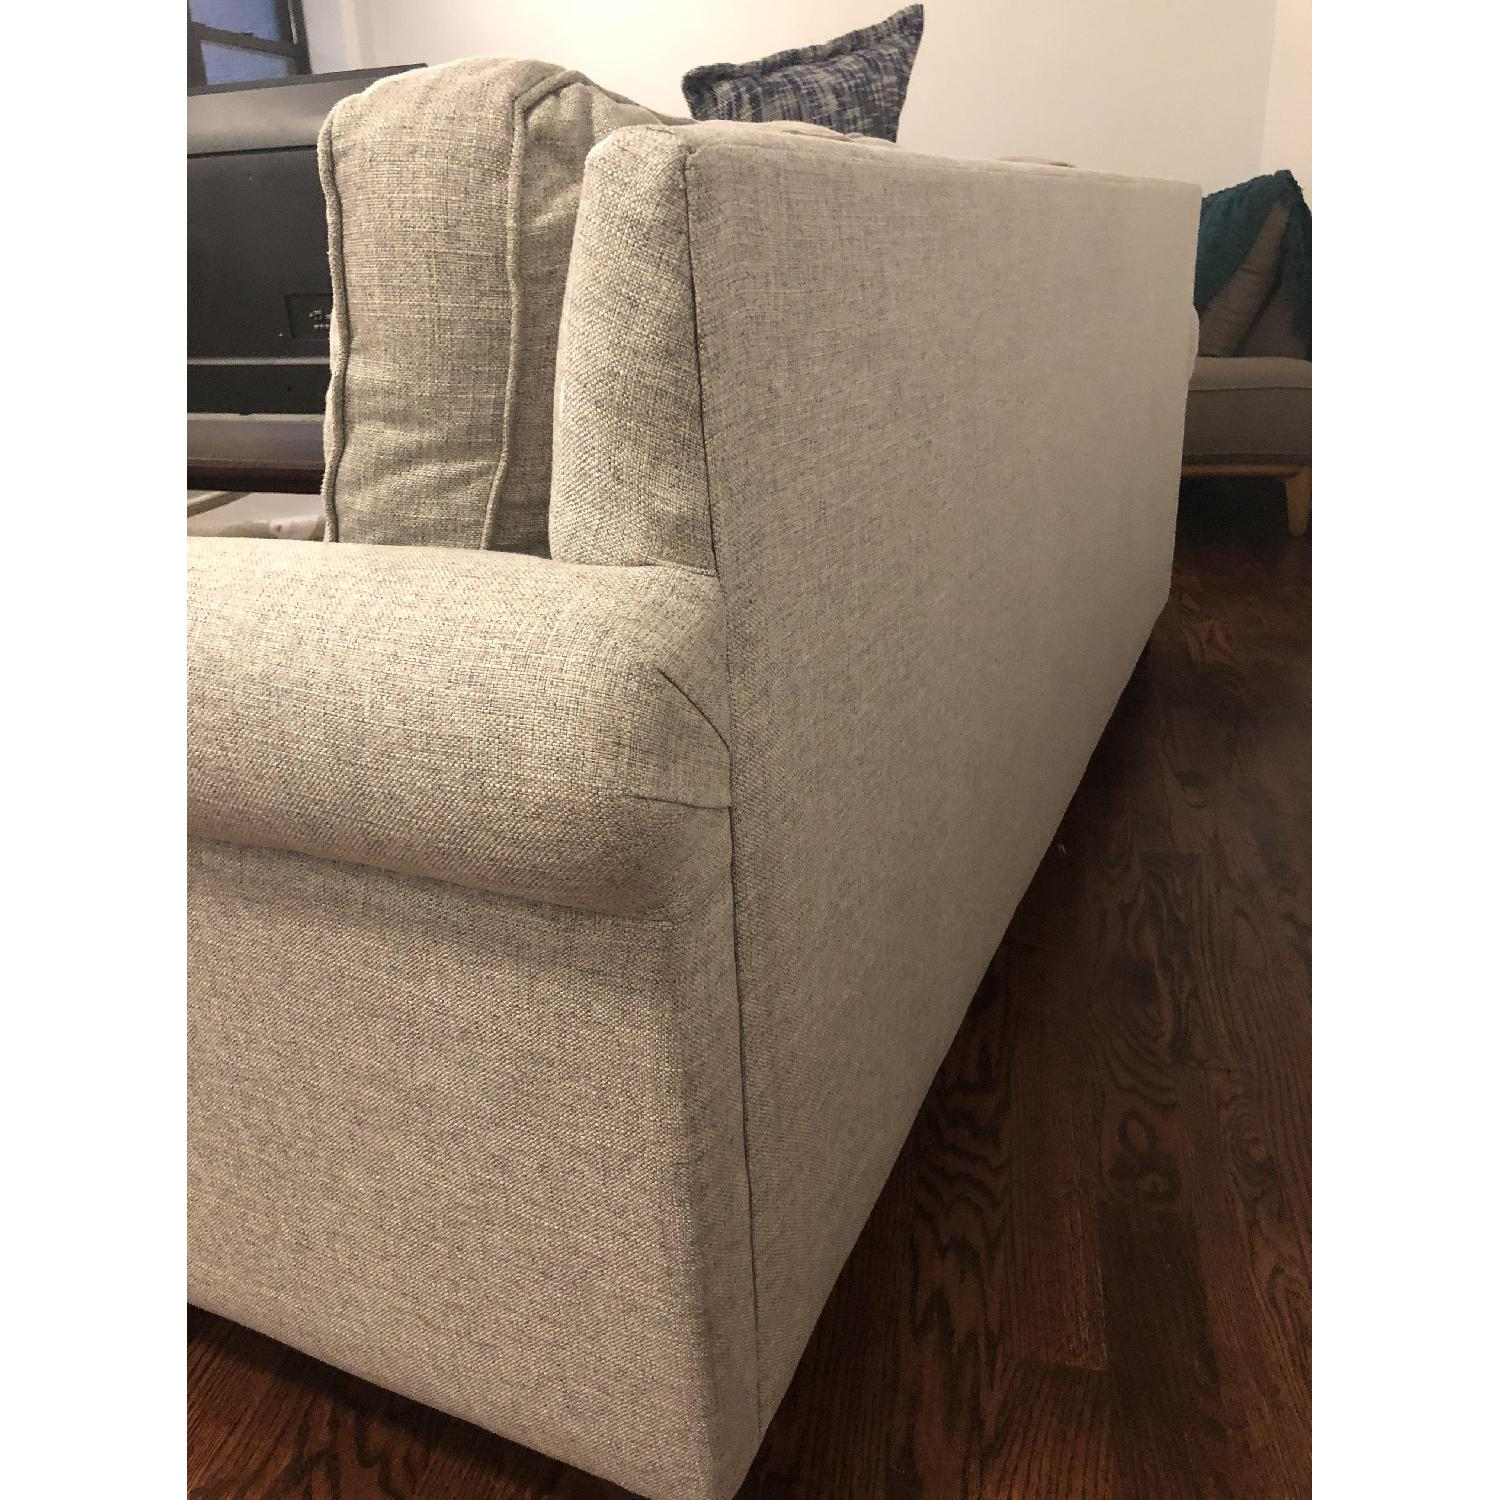 Pottery Barn Cameron Upholstered Sofa - image-3